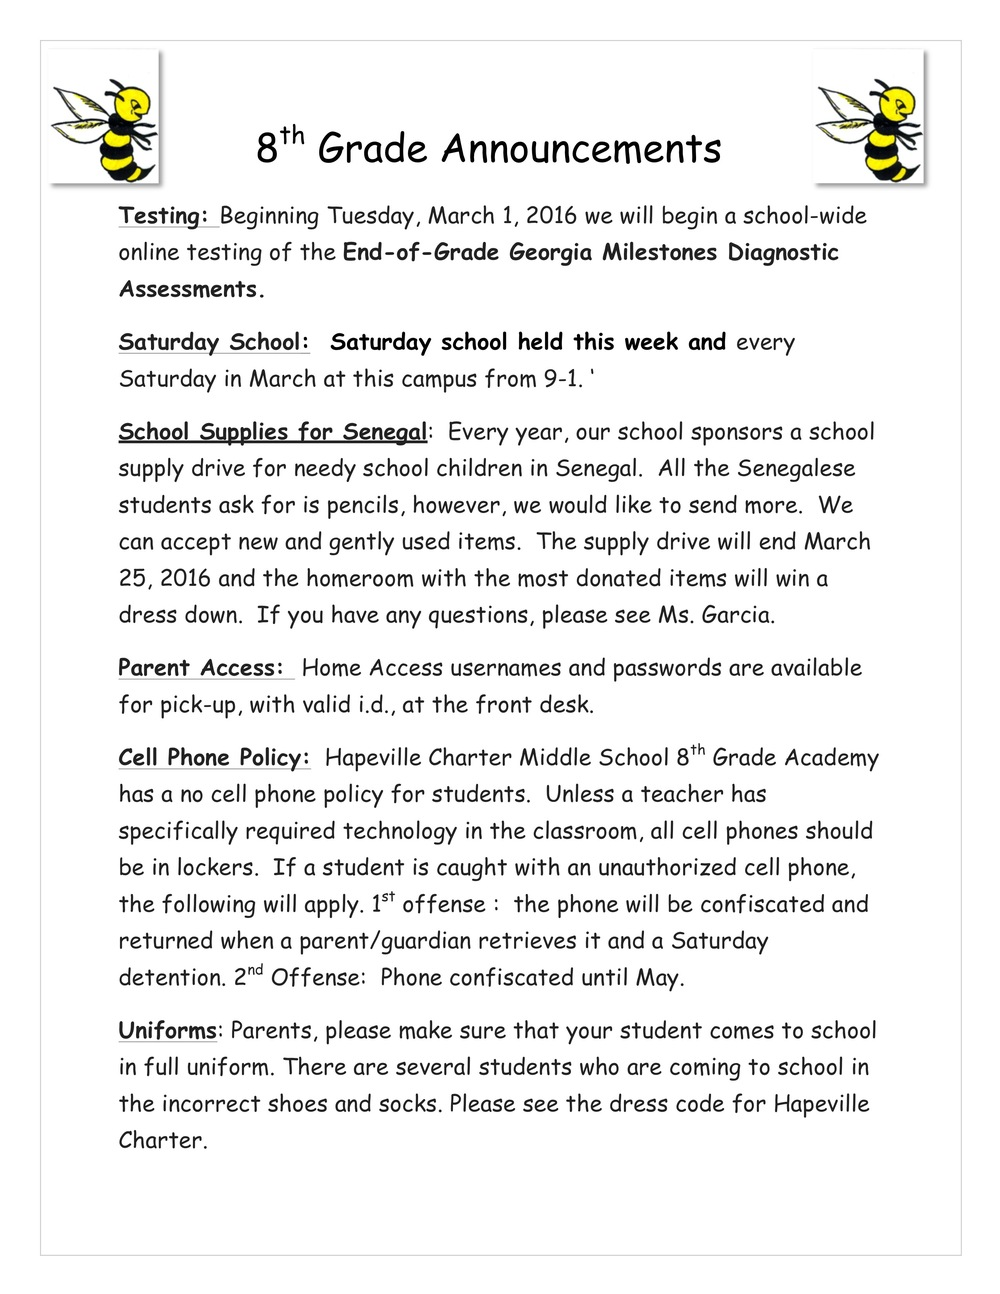 February 29, 2016 Newsletter 8th Grade 2pdf-image.jpeg